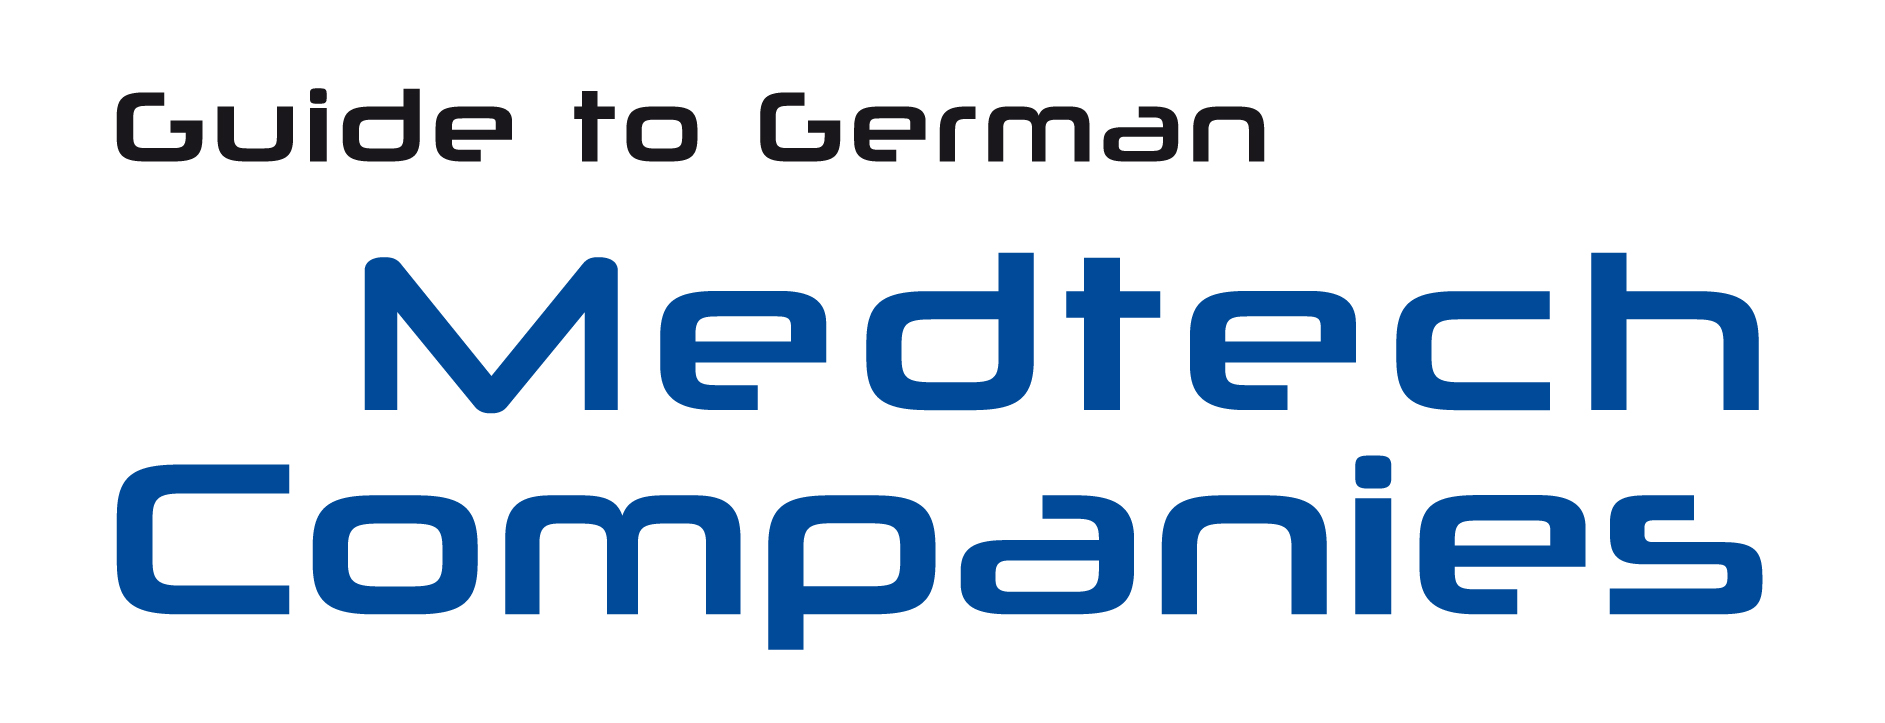 Guide-to-German-Medtech-Companies